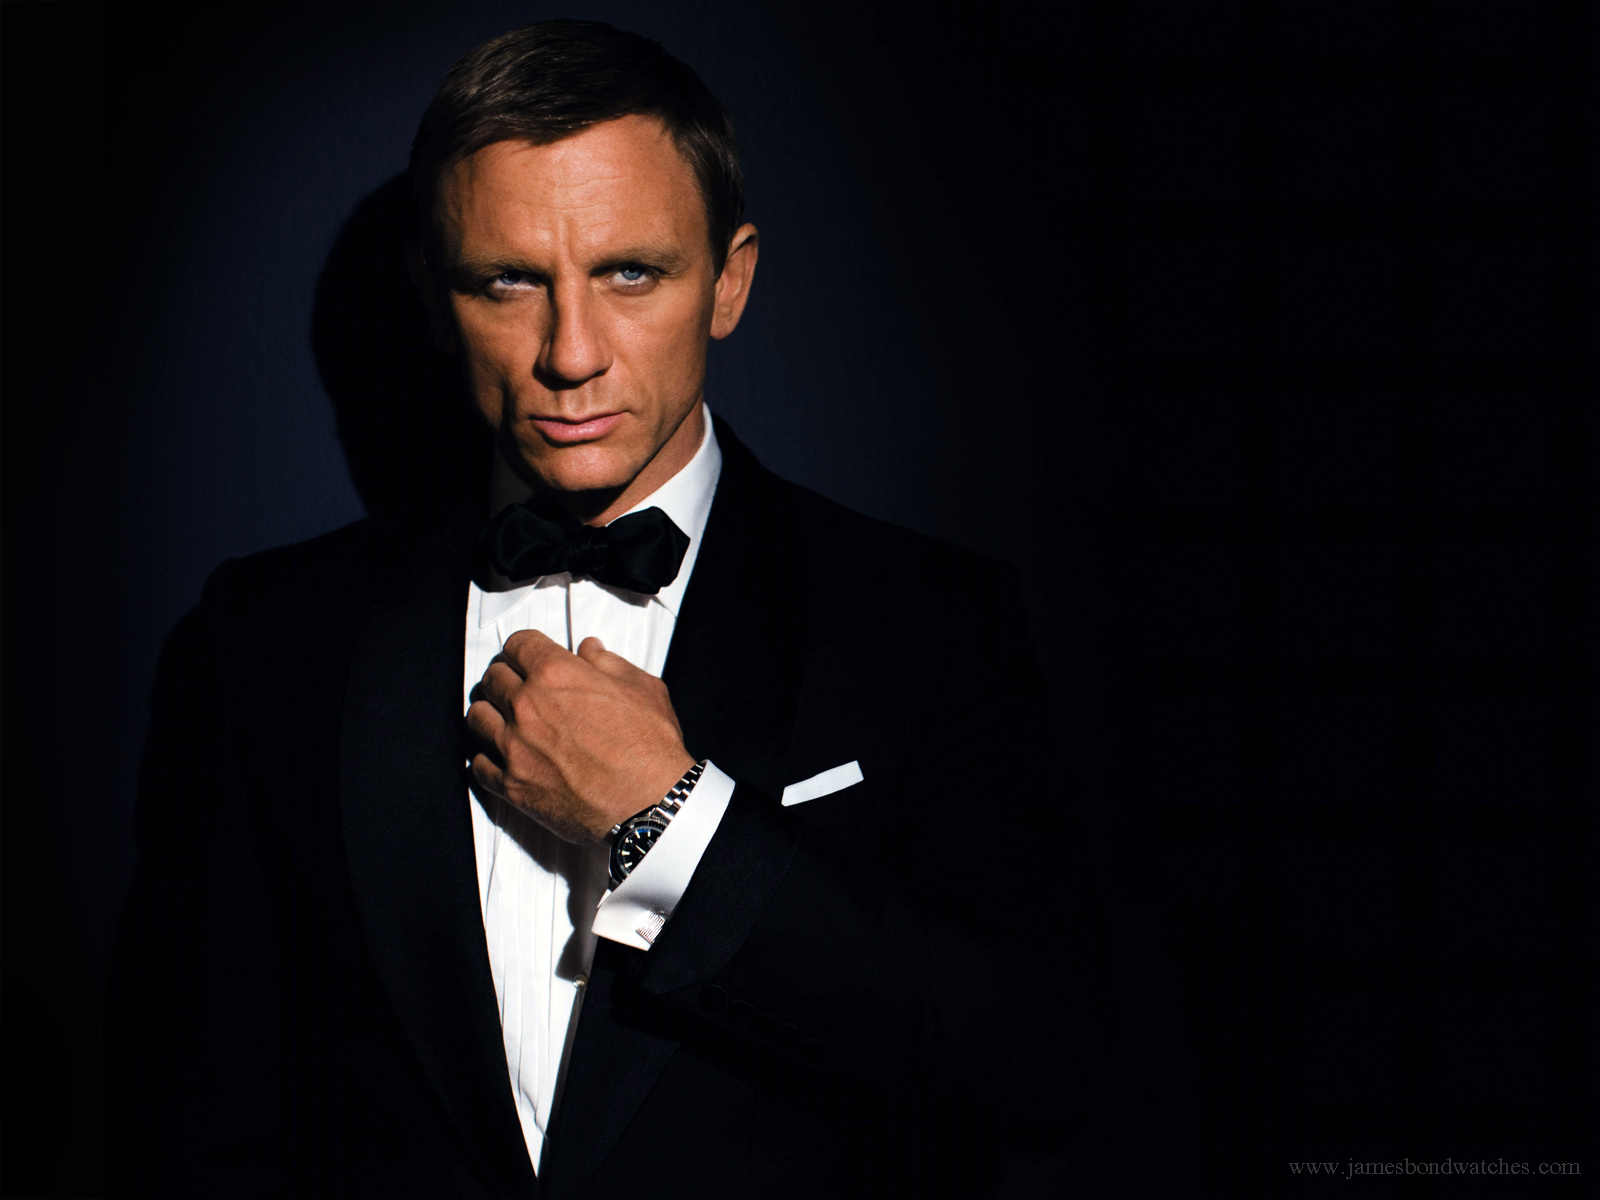 http://4.bp.blogspot.com/_2n9G8hS3AbI/TUyoDk3AwQI/AAAAAAAACIw/DL4pS6bS-QI/s1600/James+Bond+New+Wallpaper.jpg